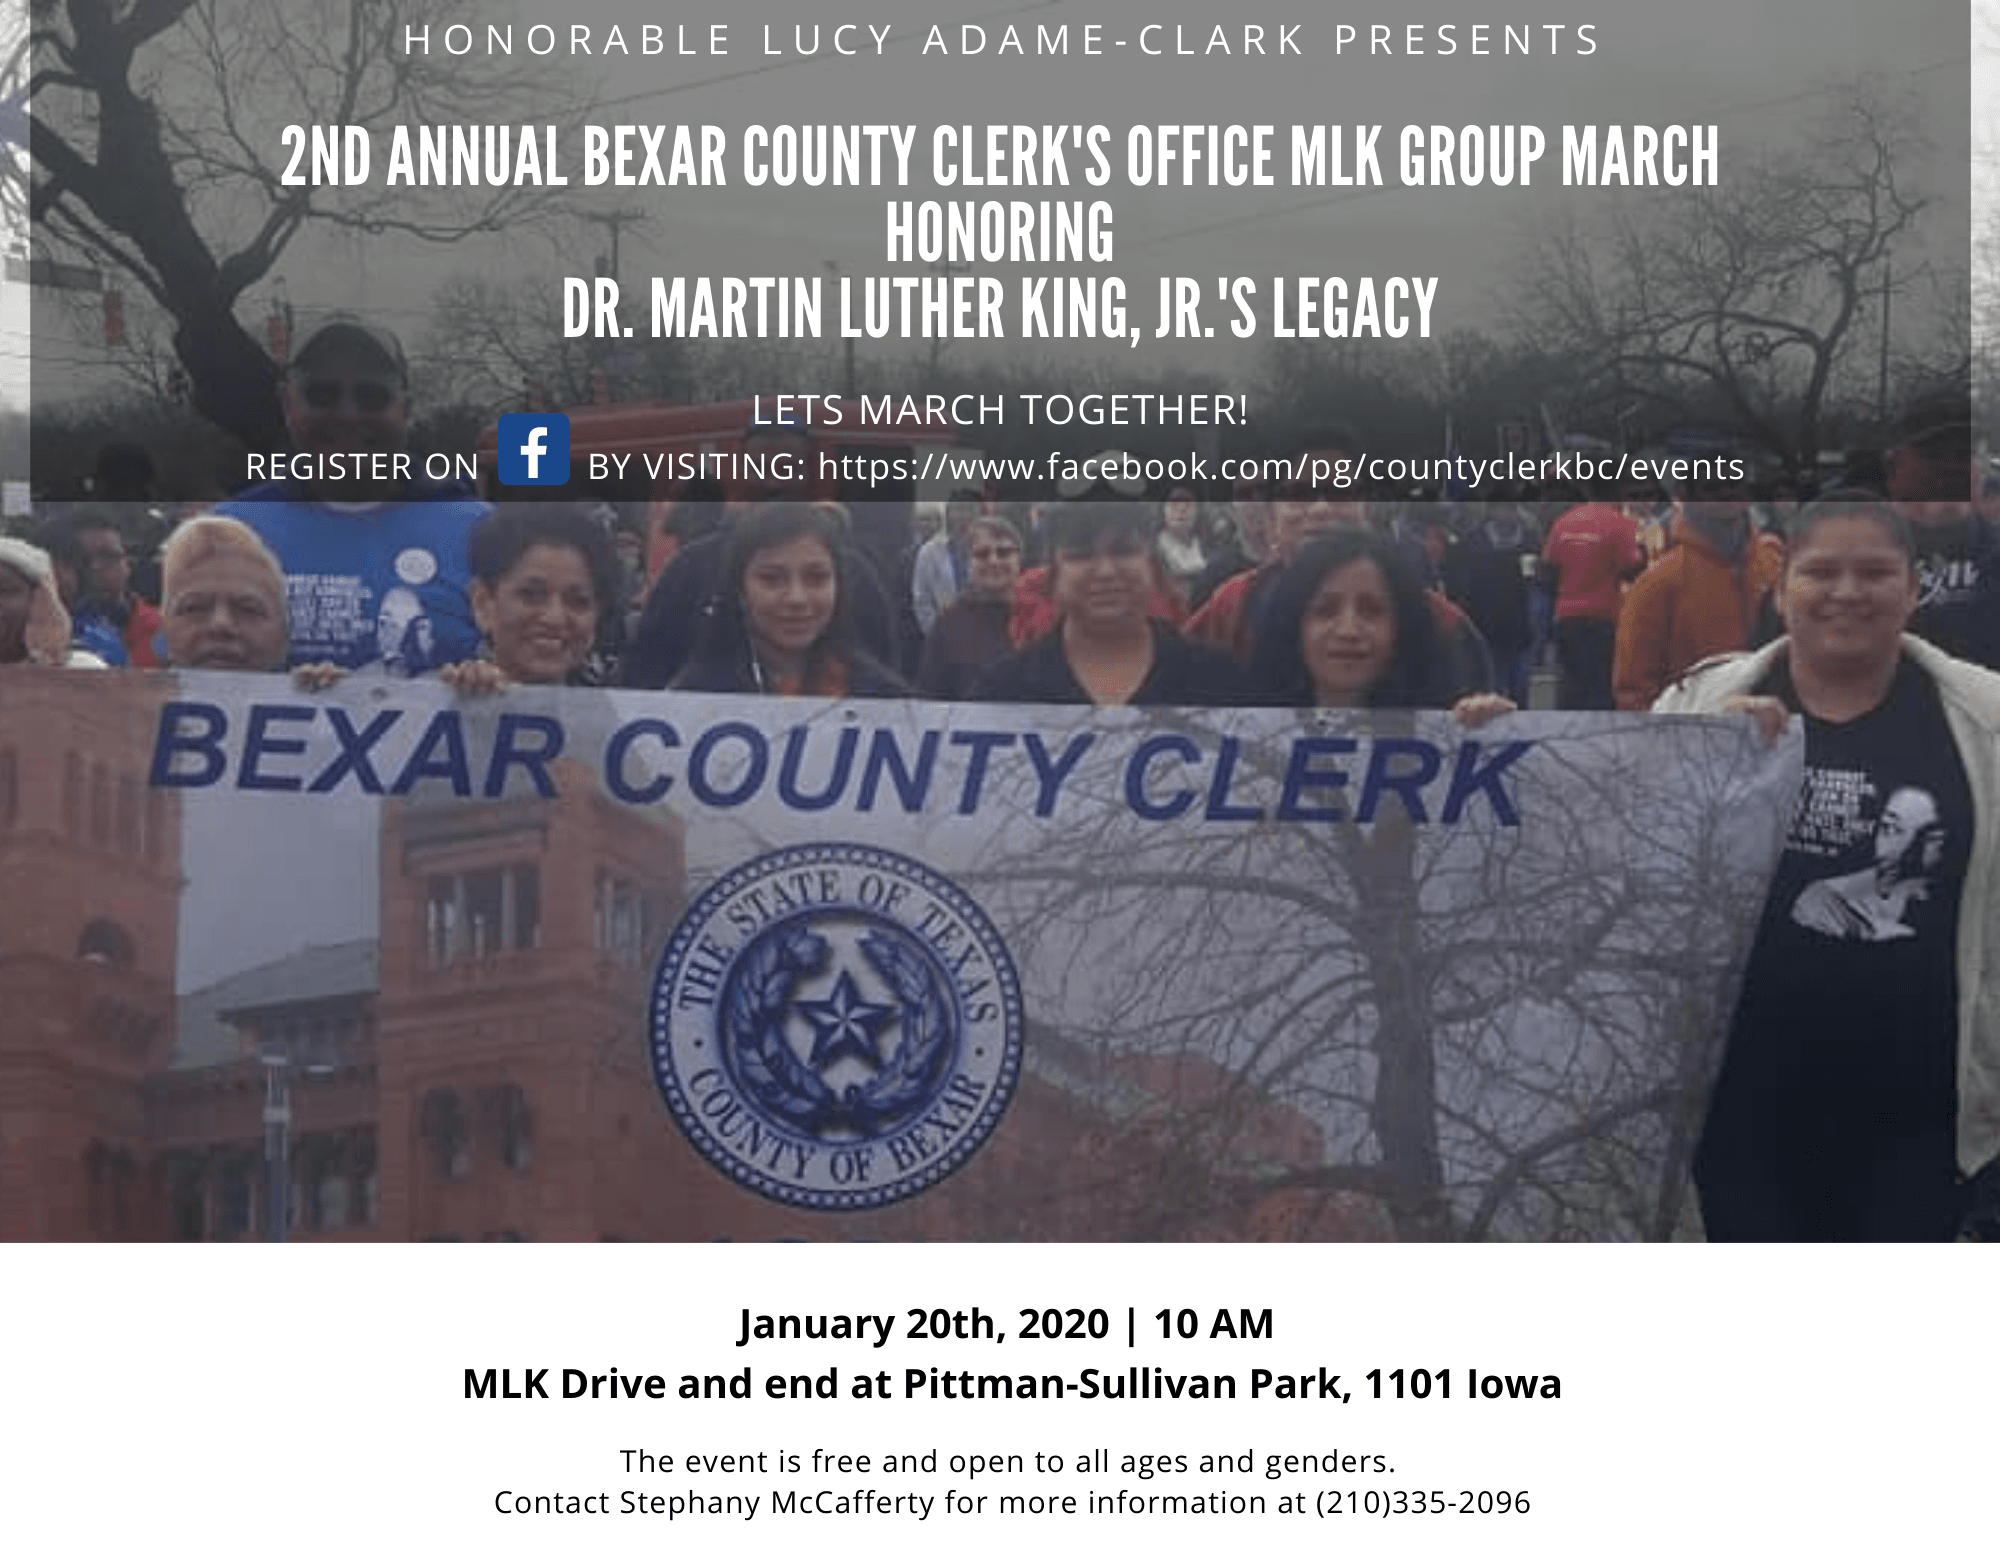 2nd Annual Bexar County Clerk's Office MLK Group March Invitation